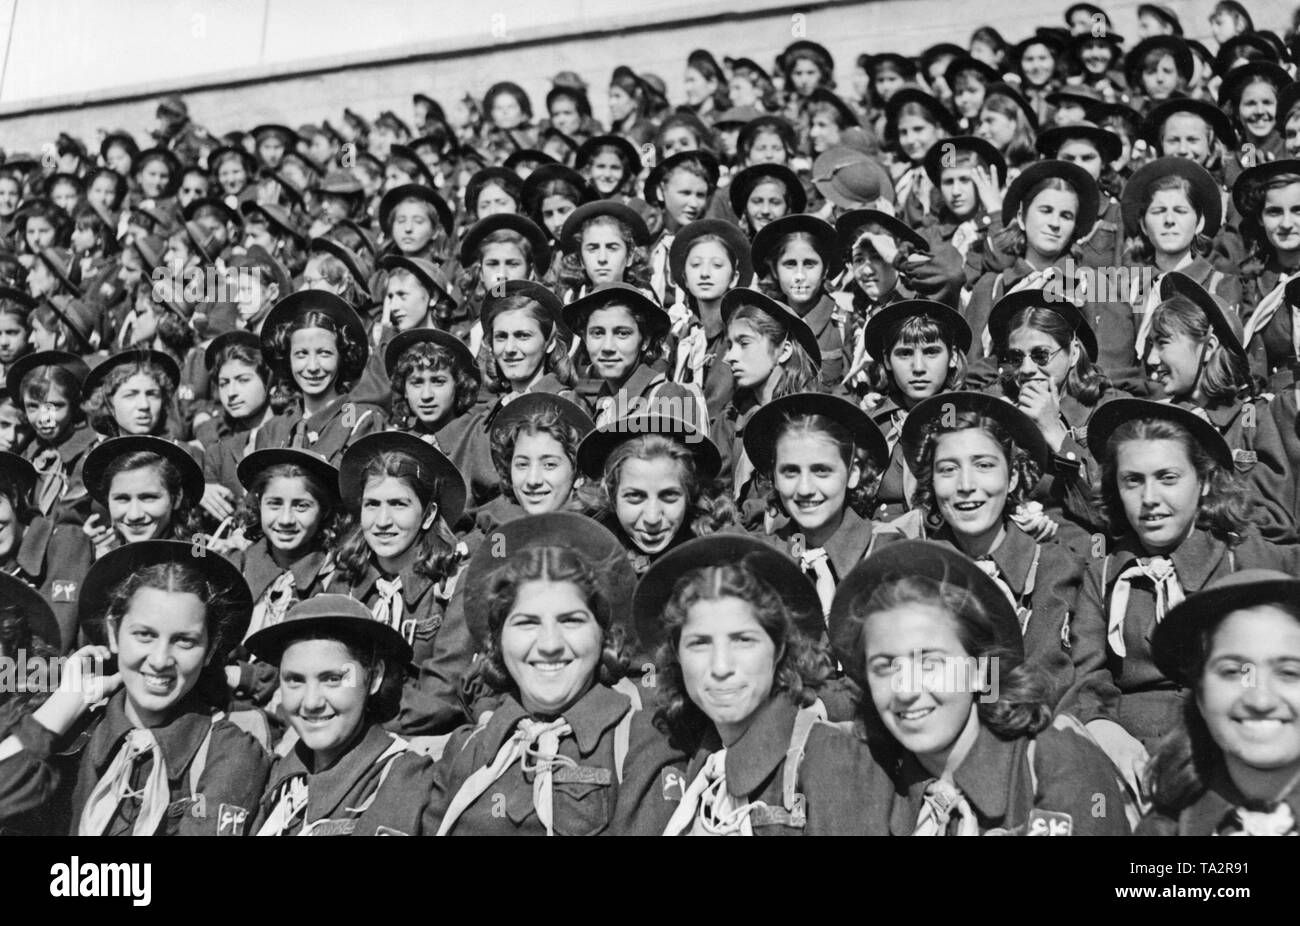 Iranian girl scouts at an event in a stadium. - Stock Image